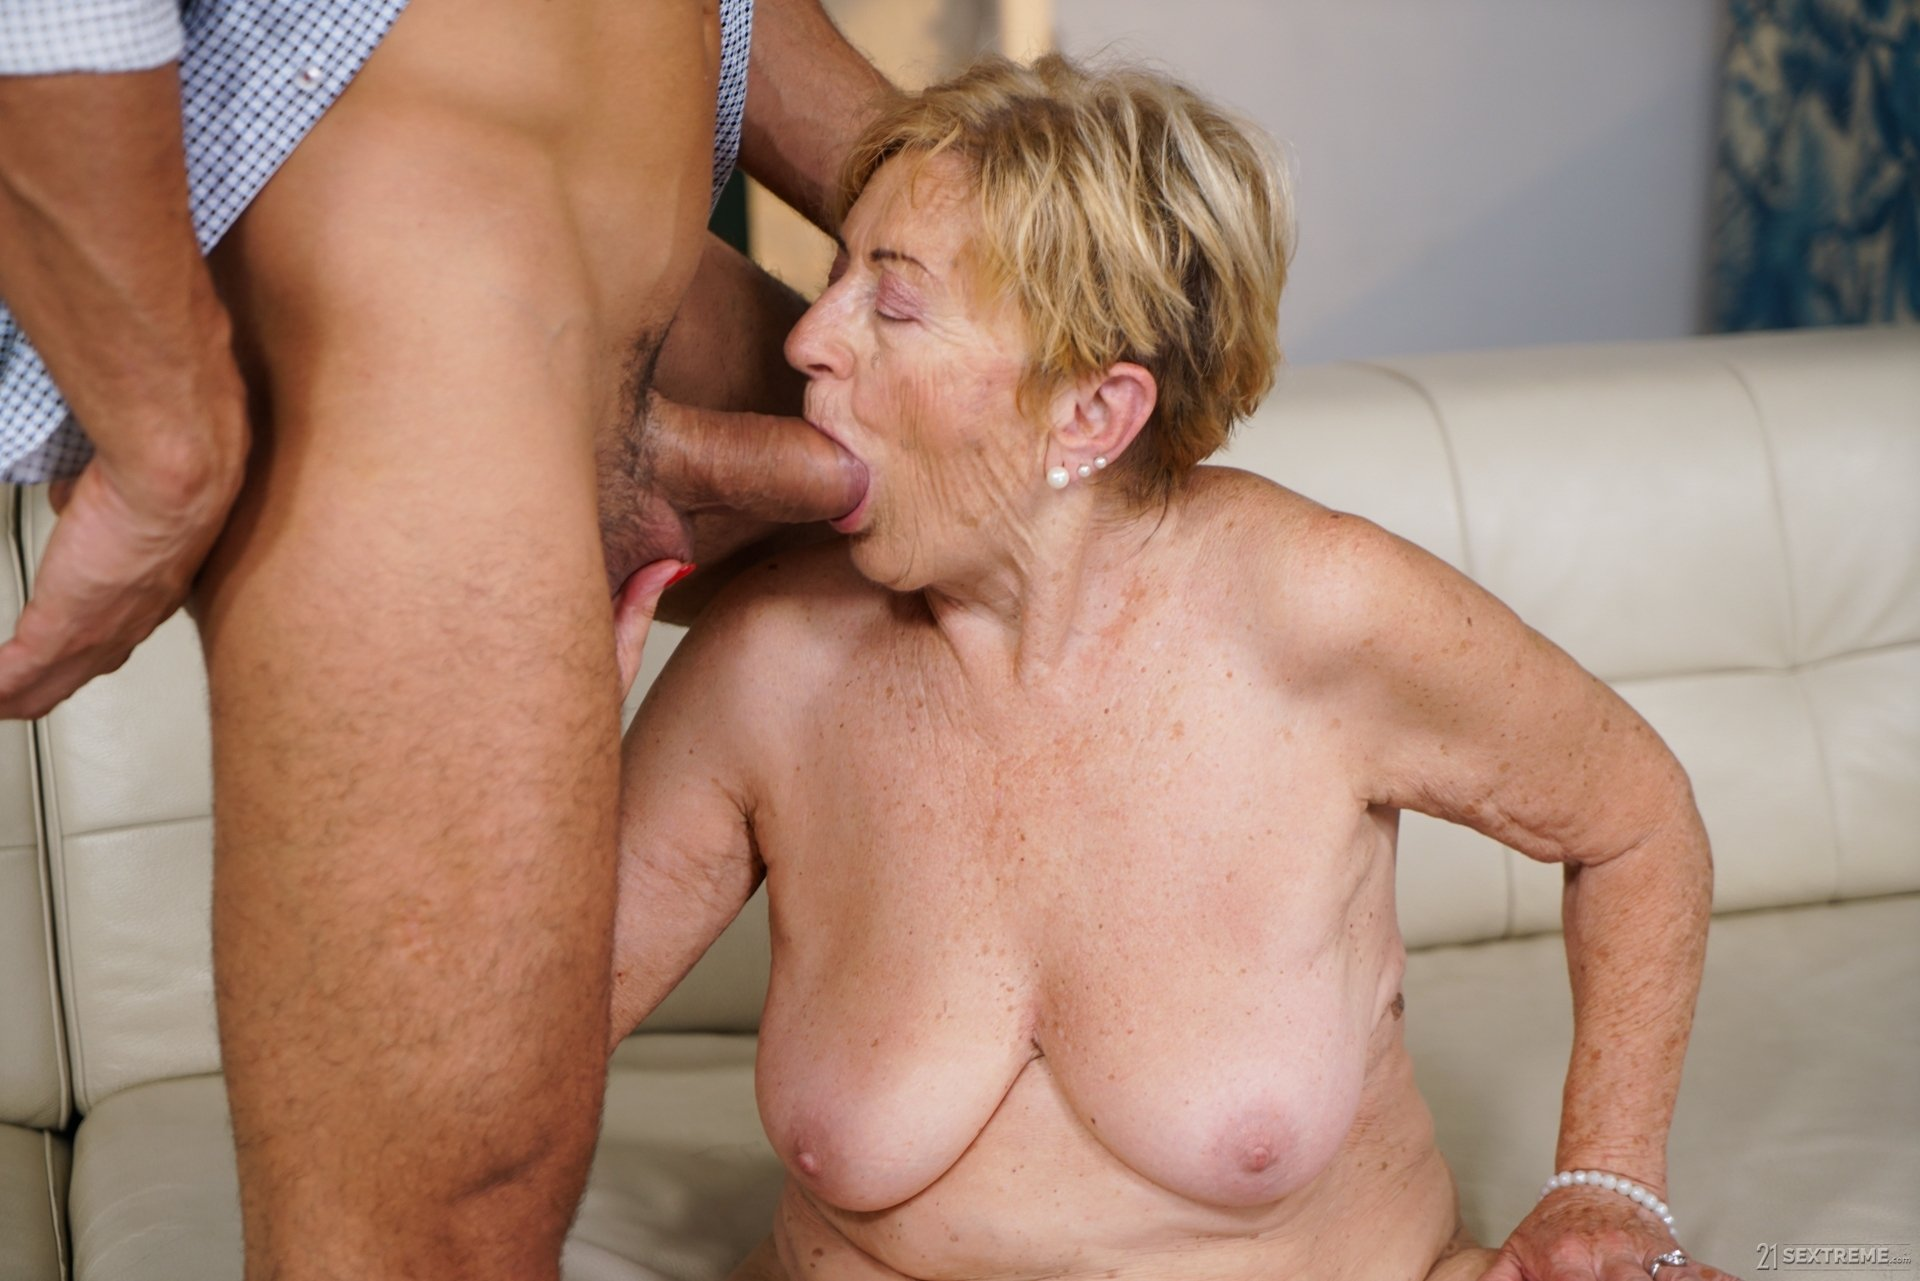 new black porn websites granny and boy xxx